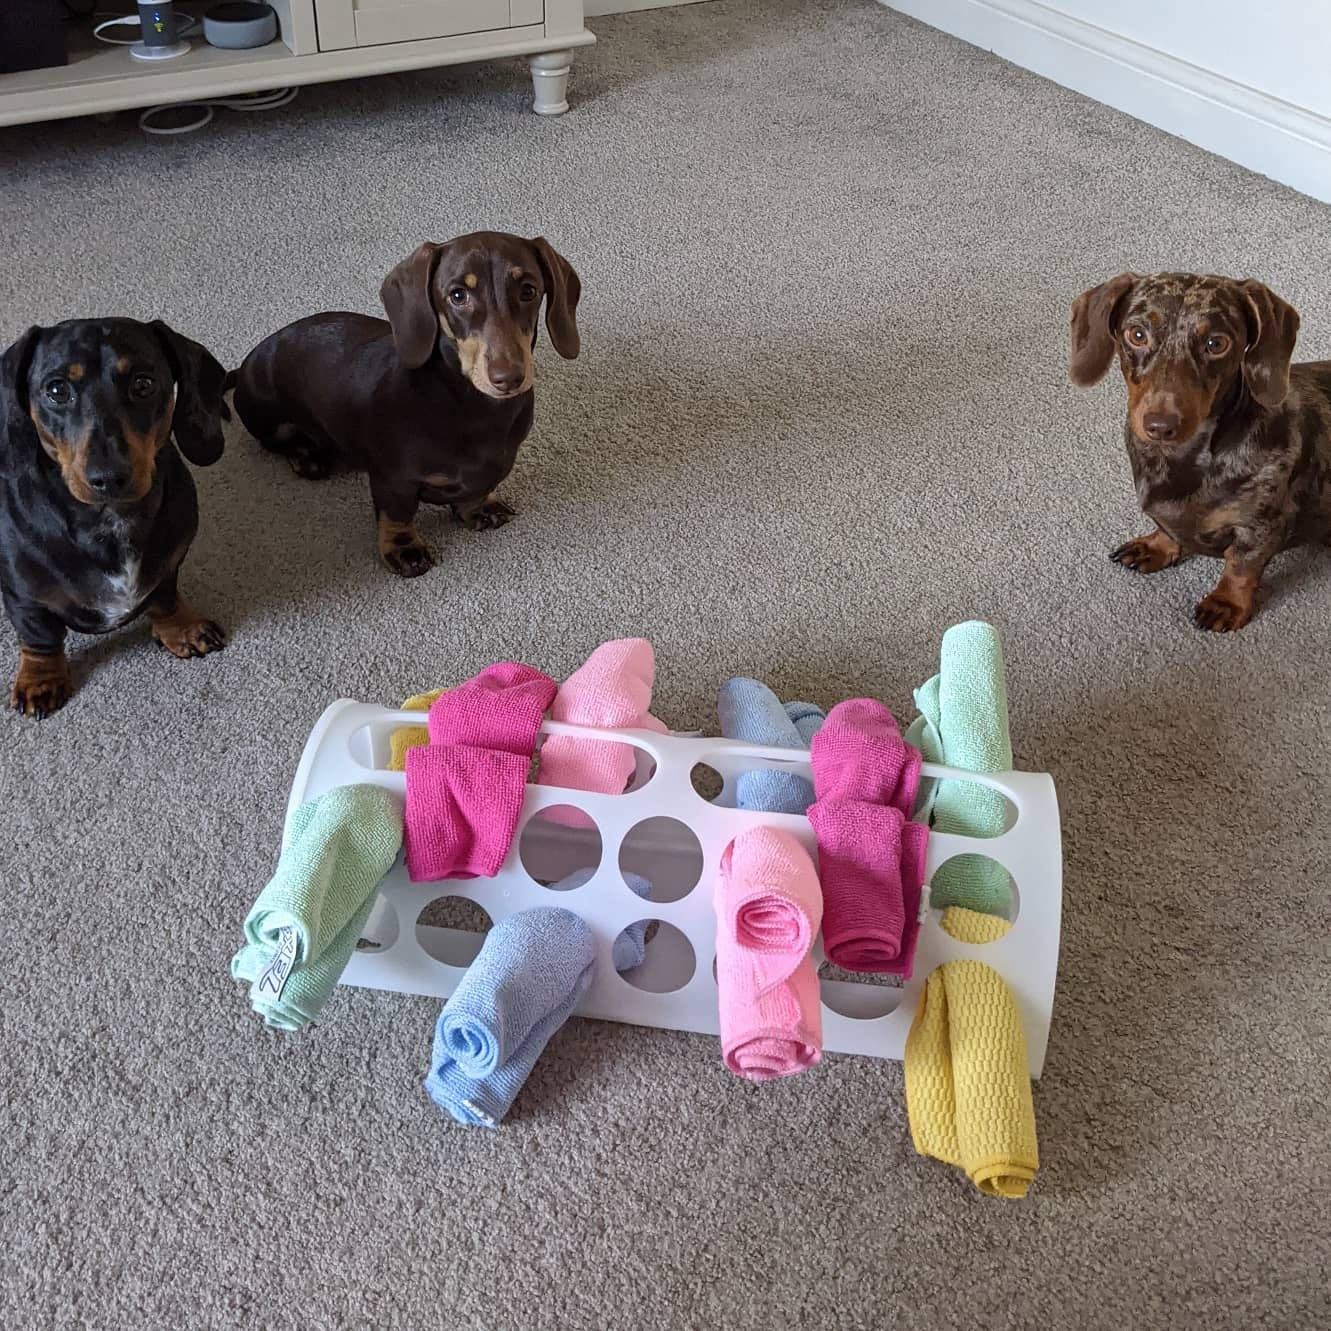 Dachshund puppies playing a puzzle game